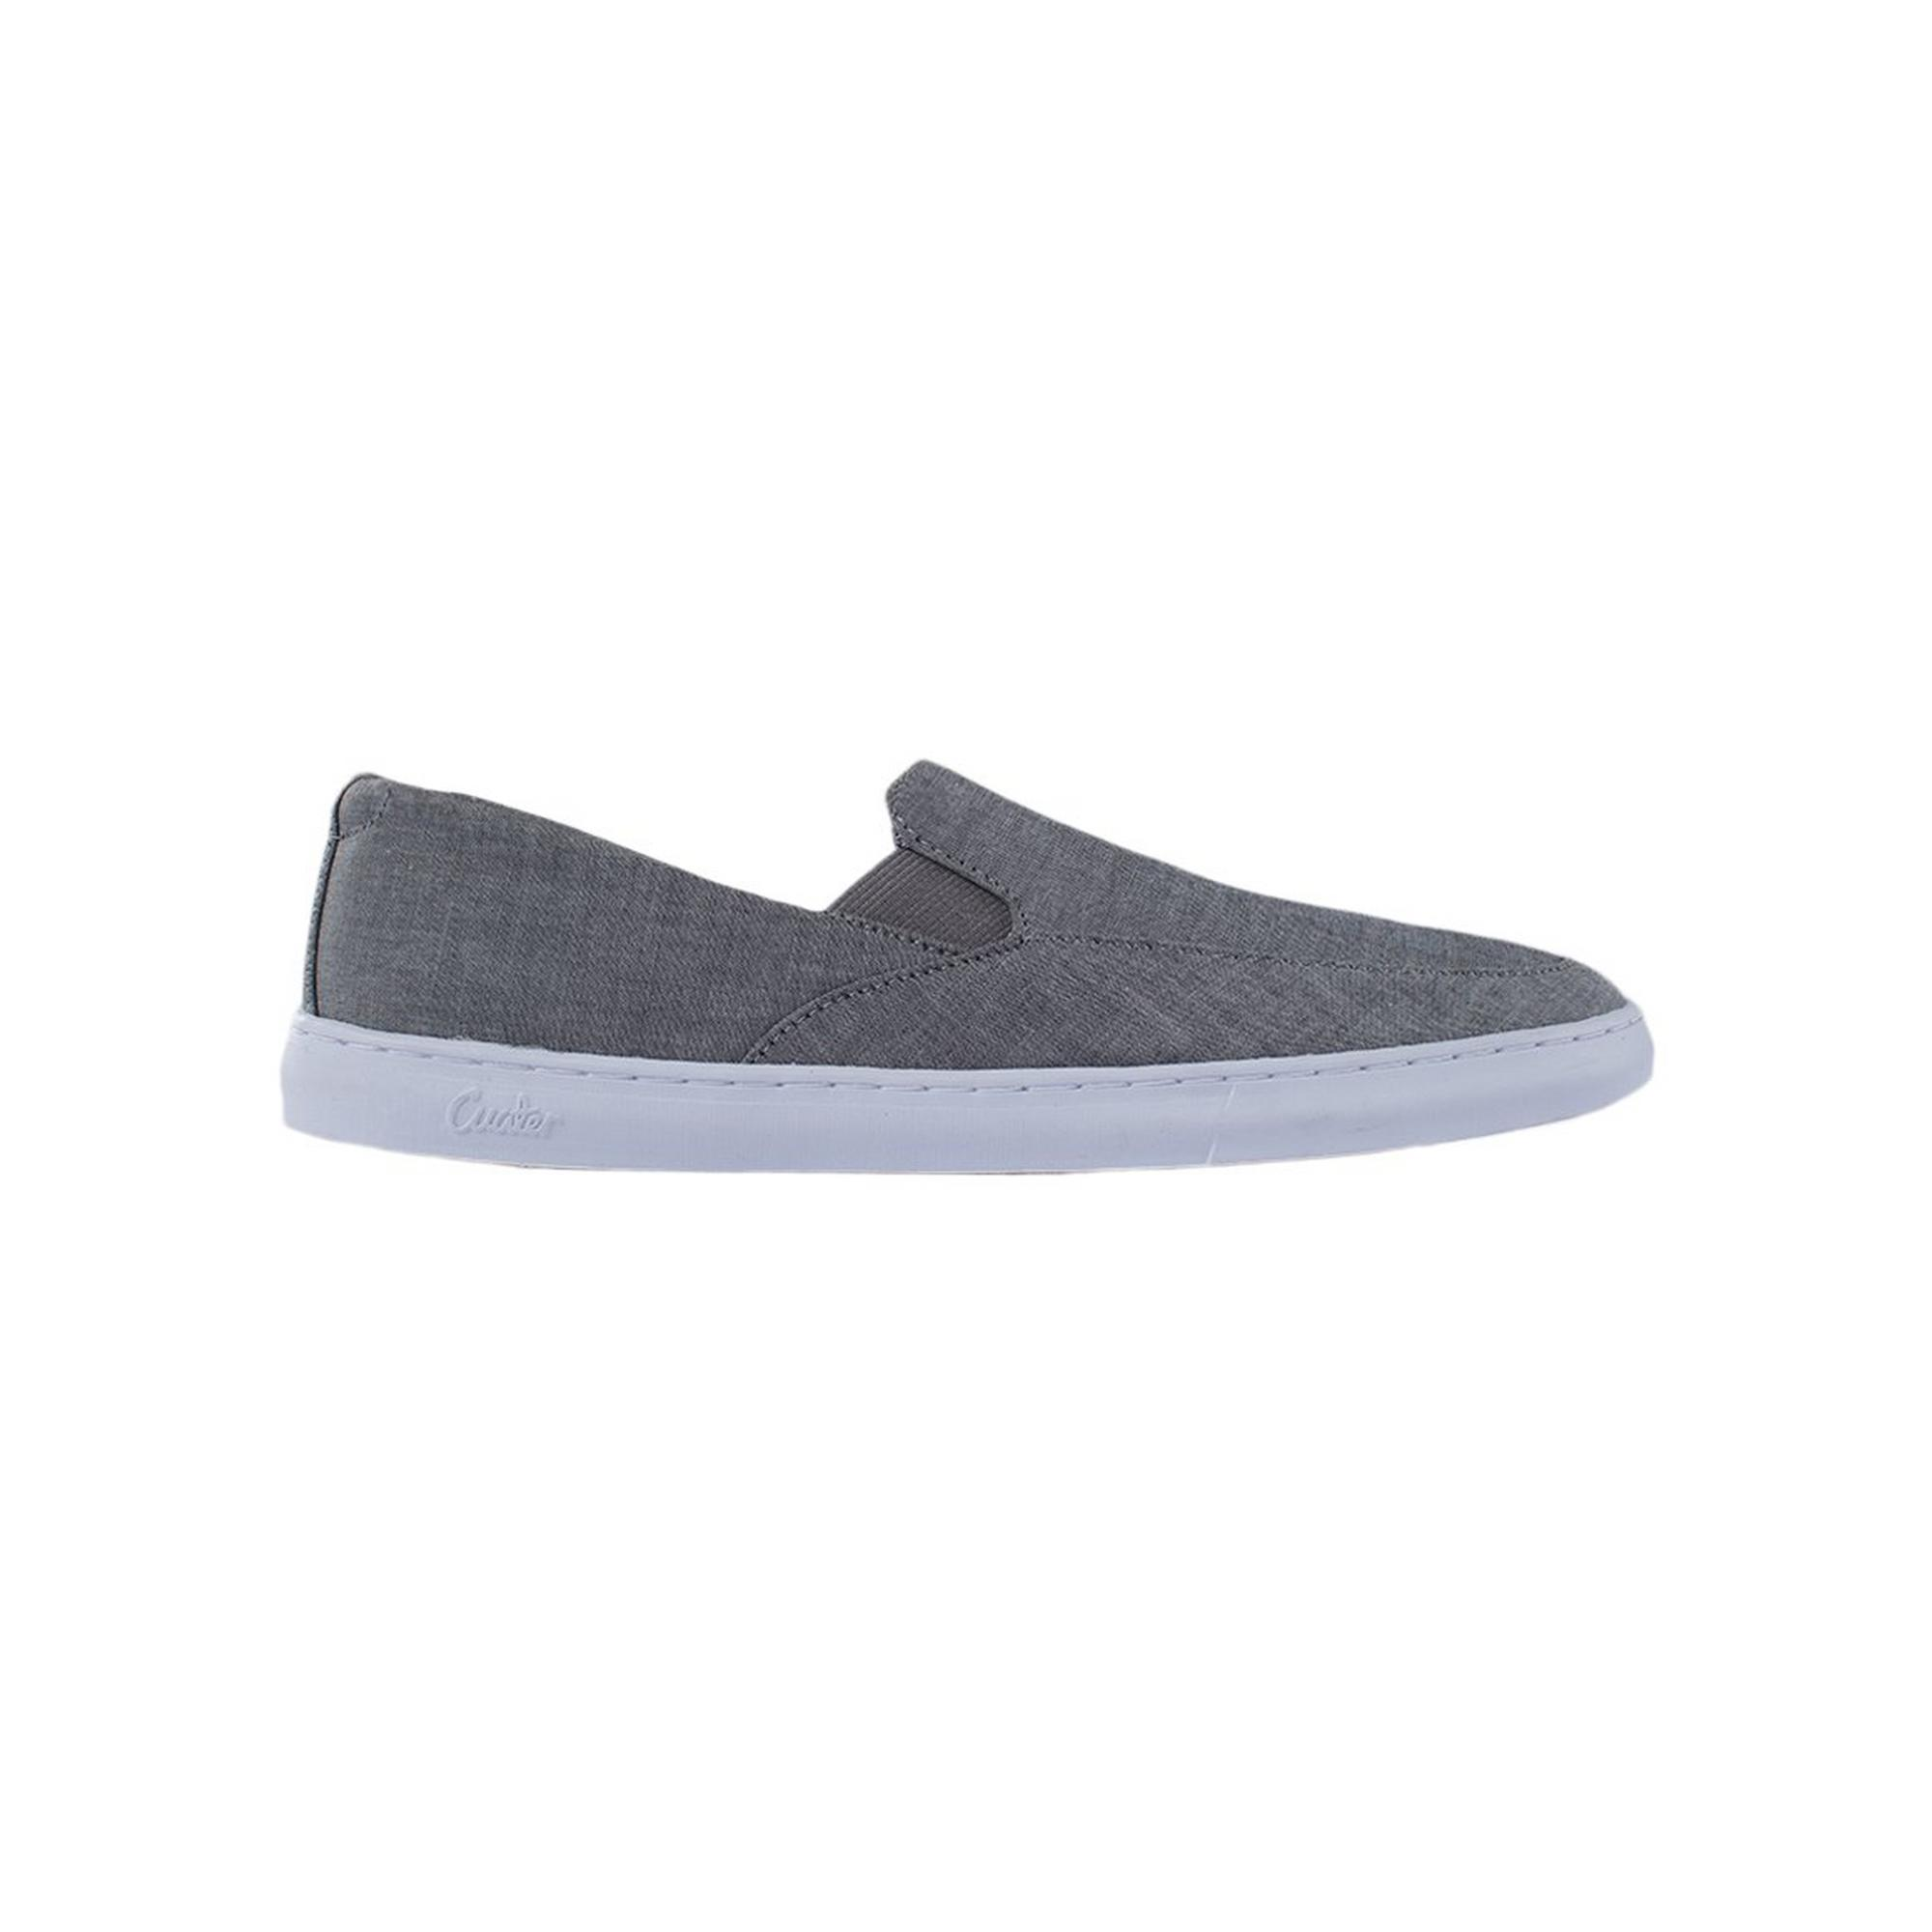 Men's Tracers Slip On Shoe - Light Grey